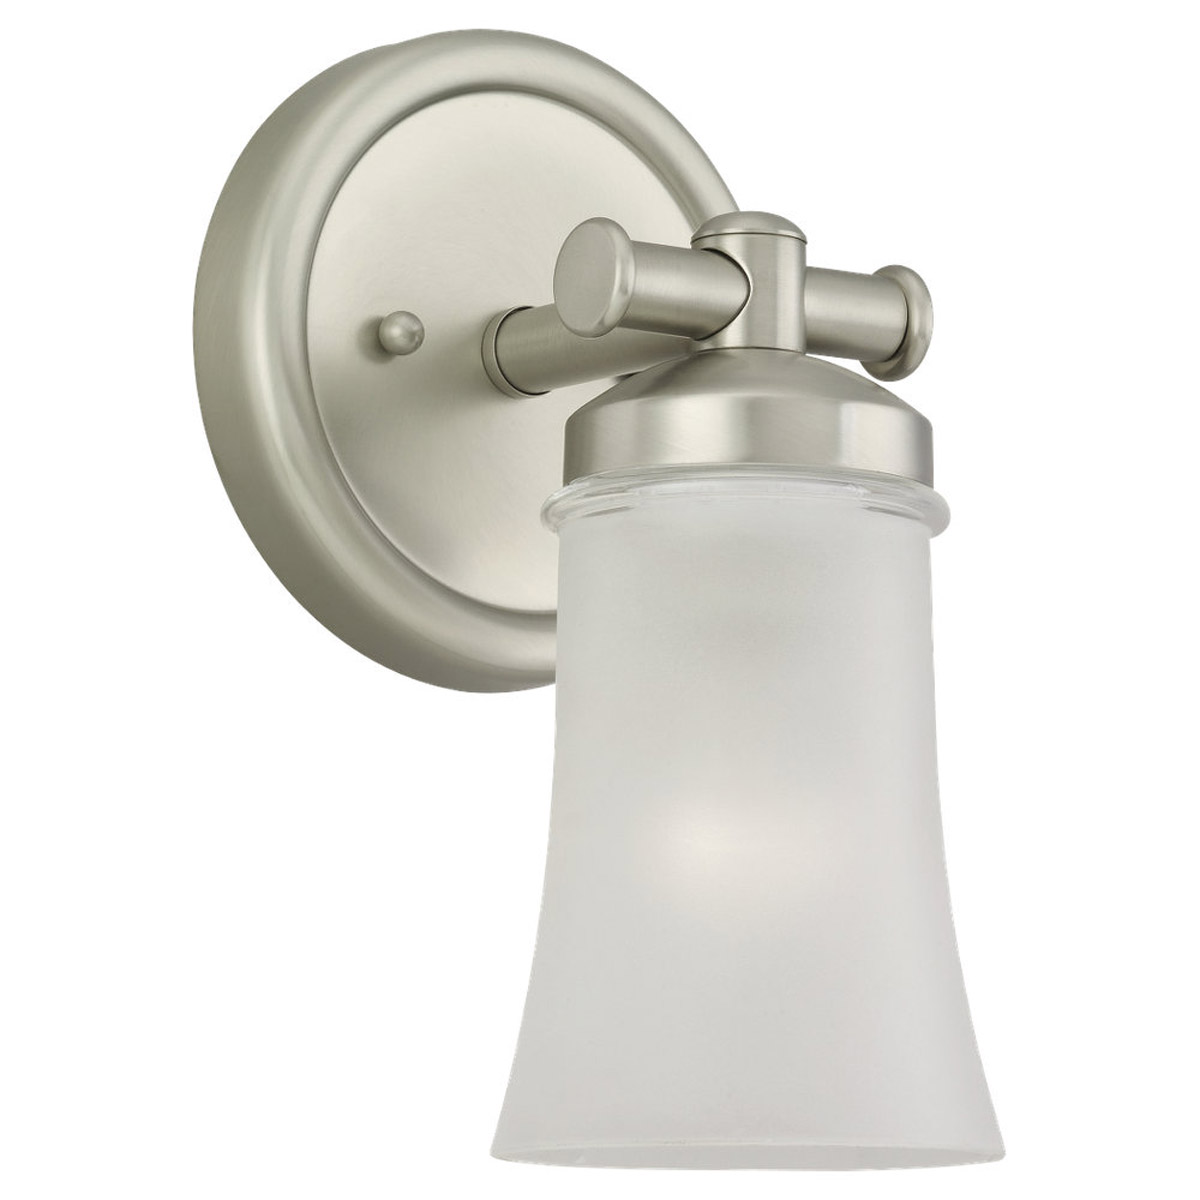 Sea Gull Lighting Newport 1 Light Bath Vanity in Antique Brushed Nickel 44482-965